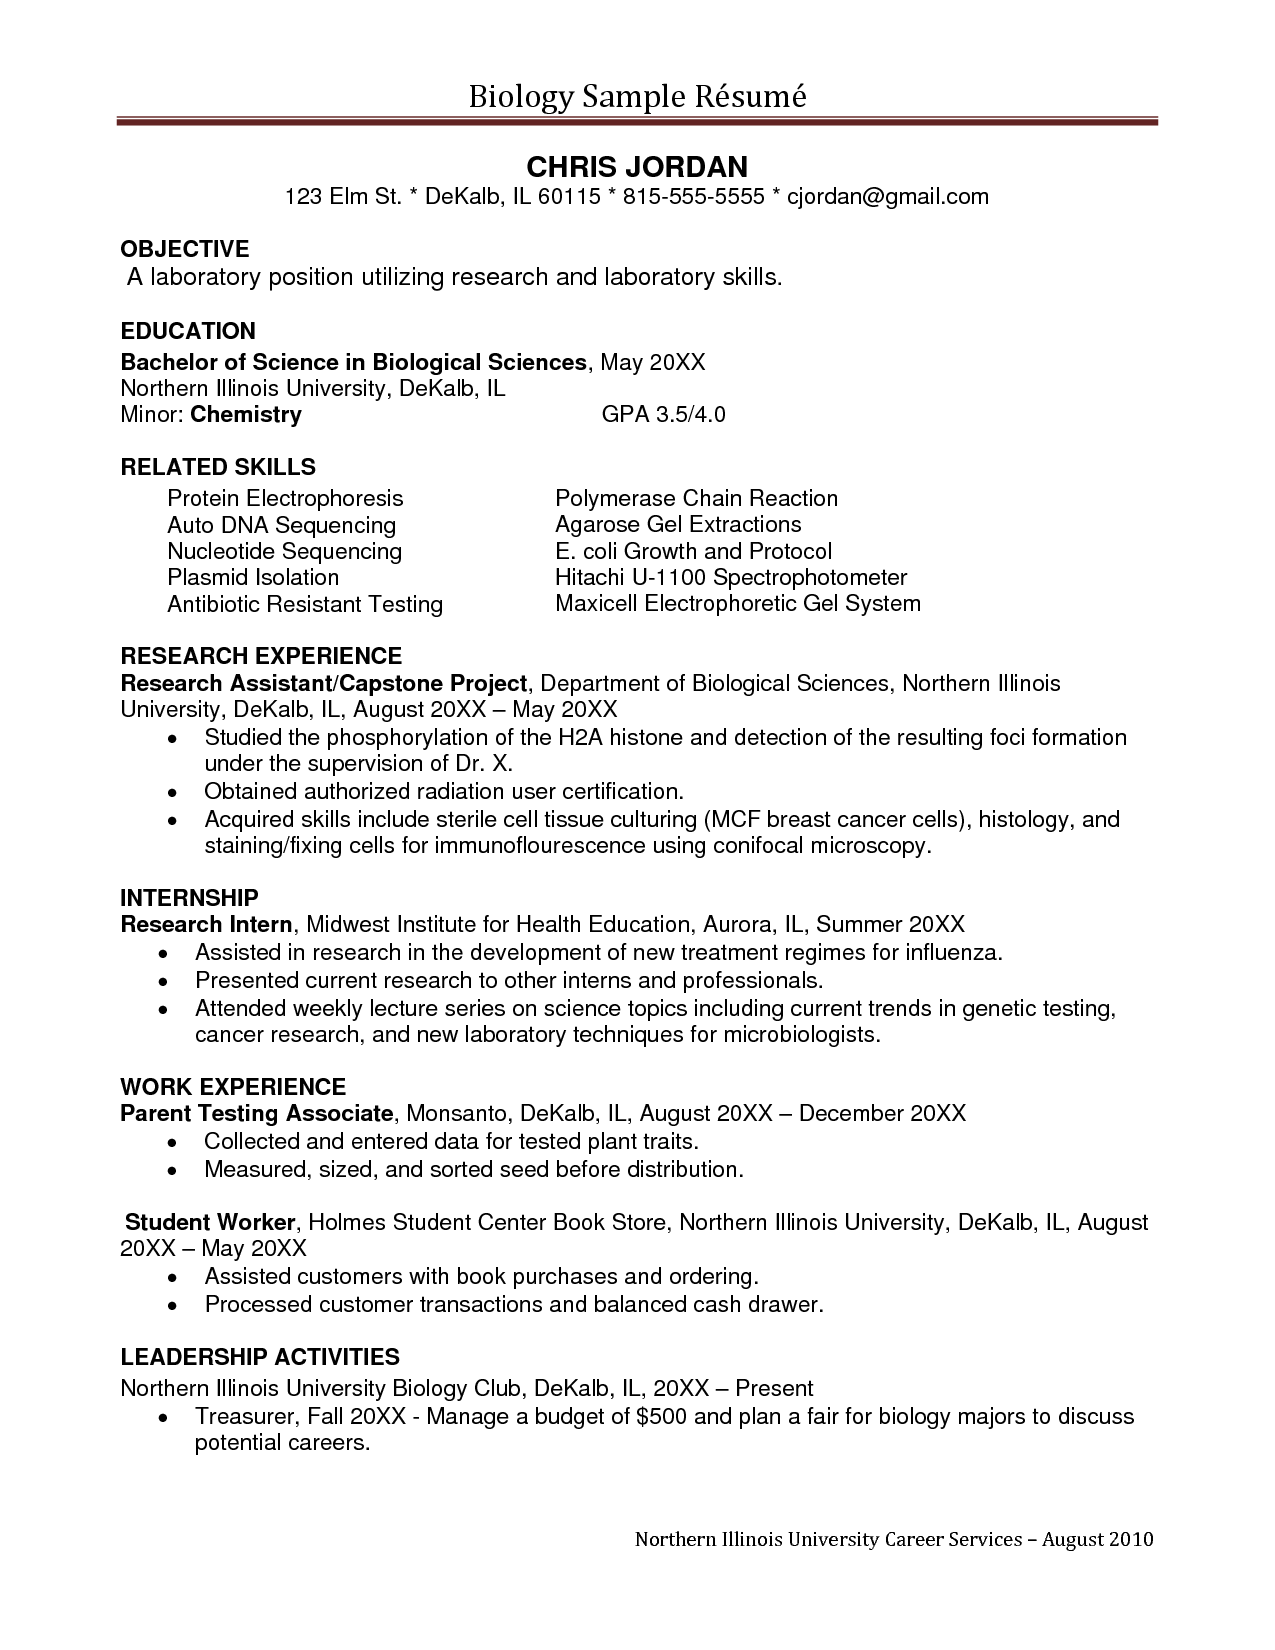 how to write the objective in a resume